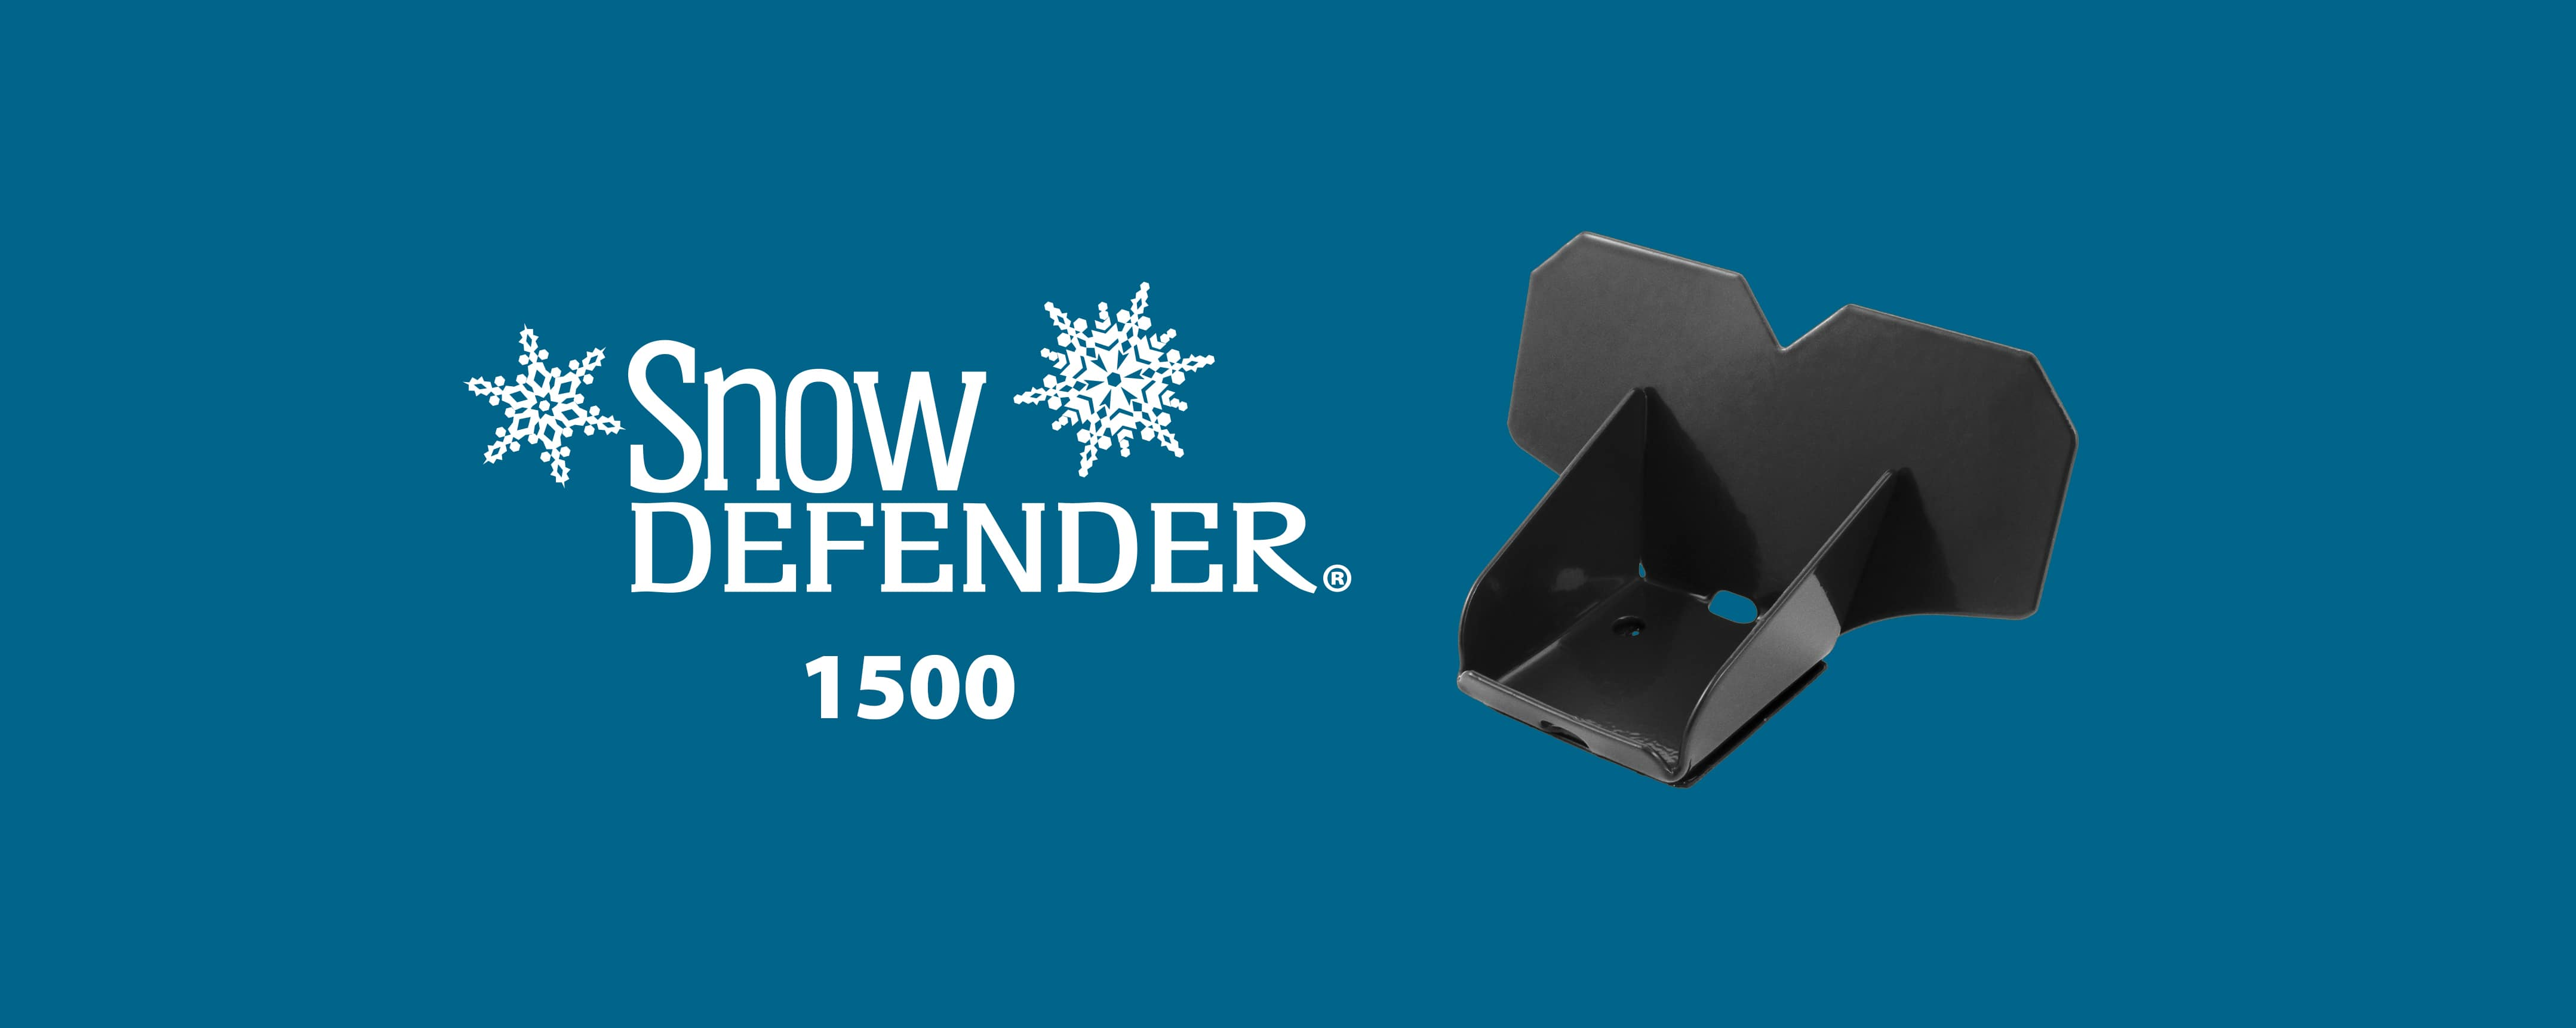 Snow Defender 1500 snow guard for metal roofing and metal panel